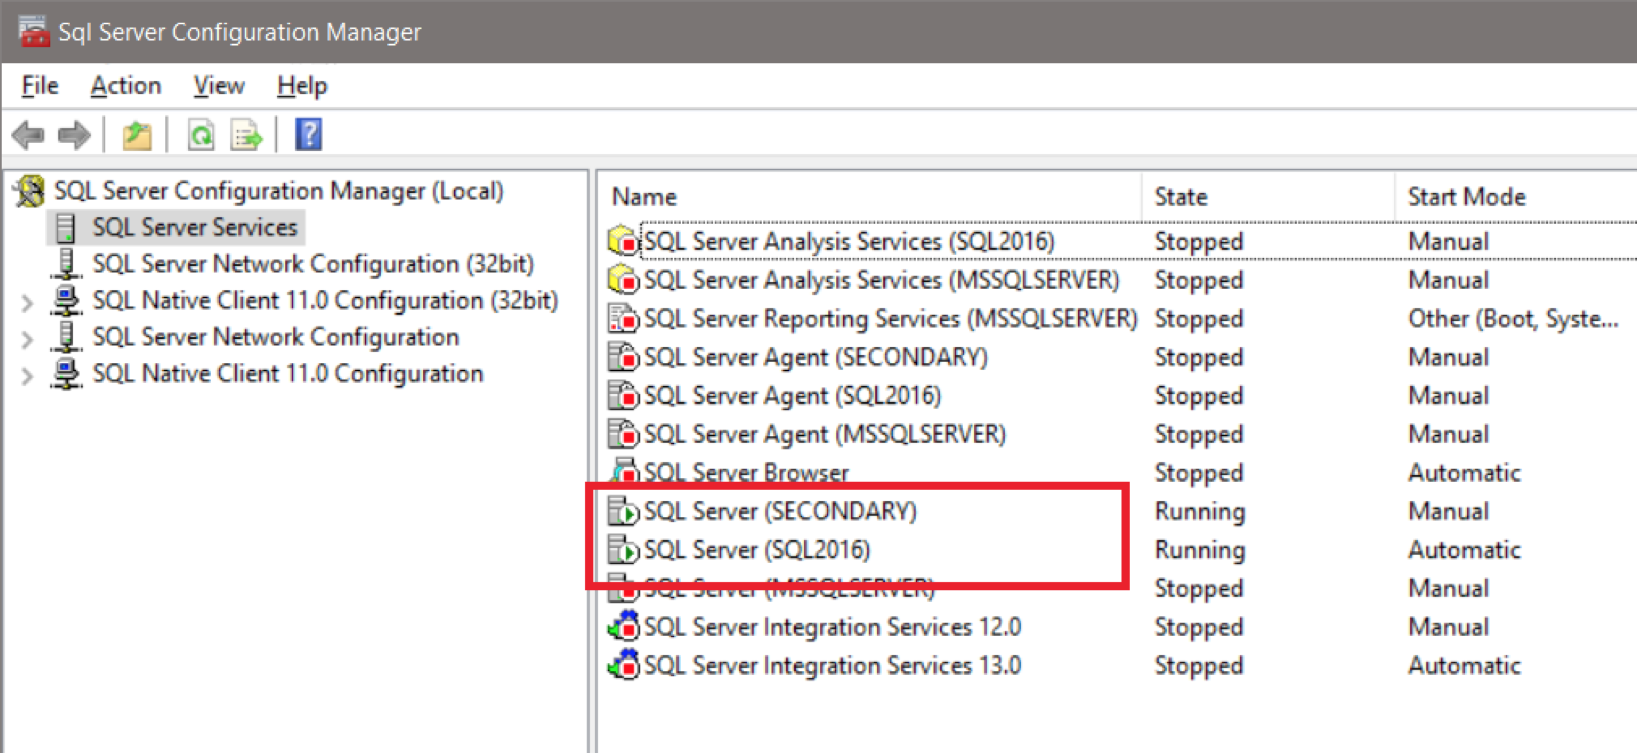 How do I make a connection to a MS SQL database with the